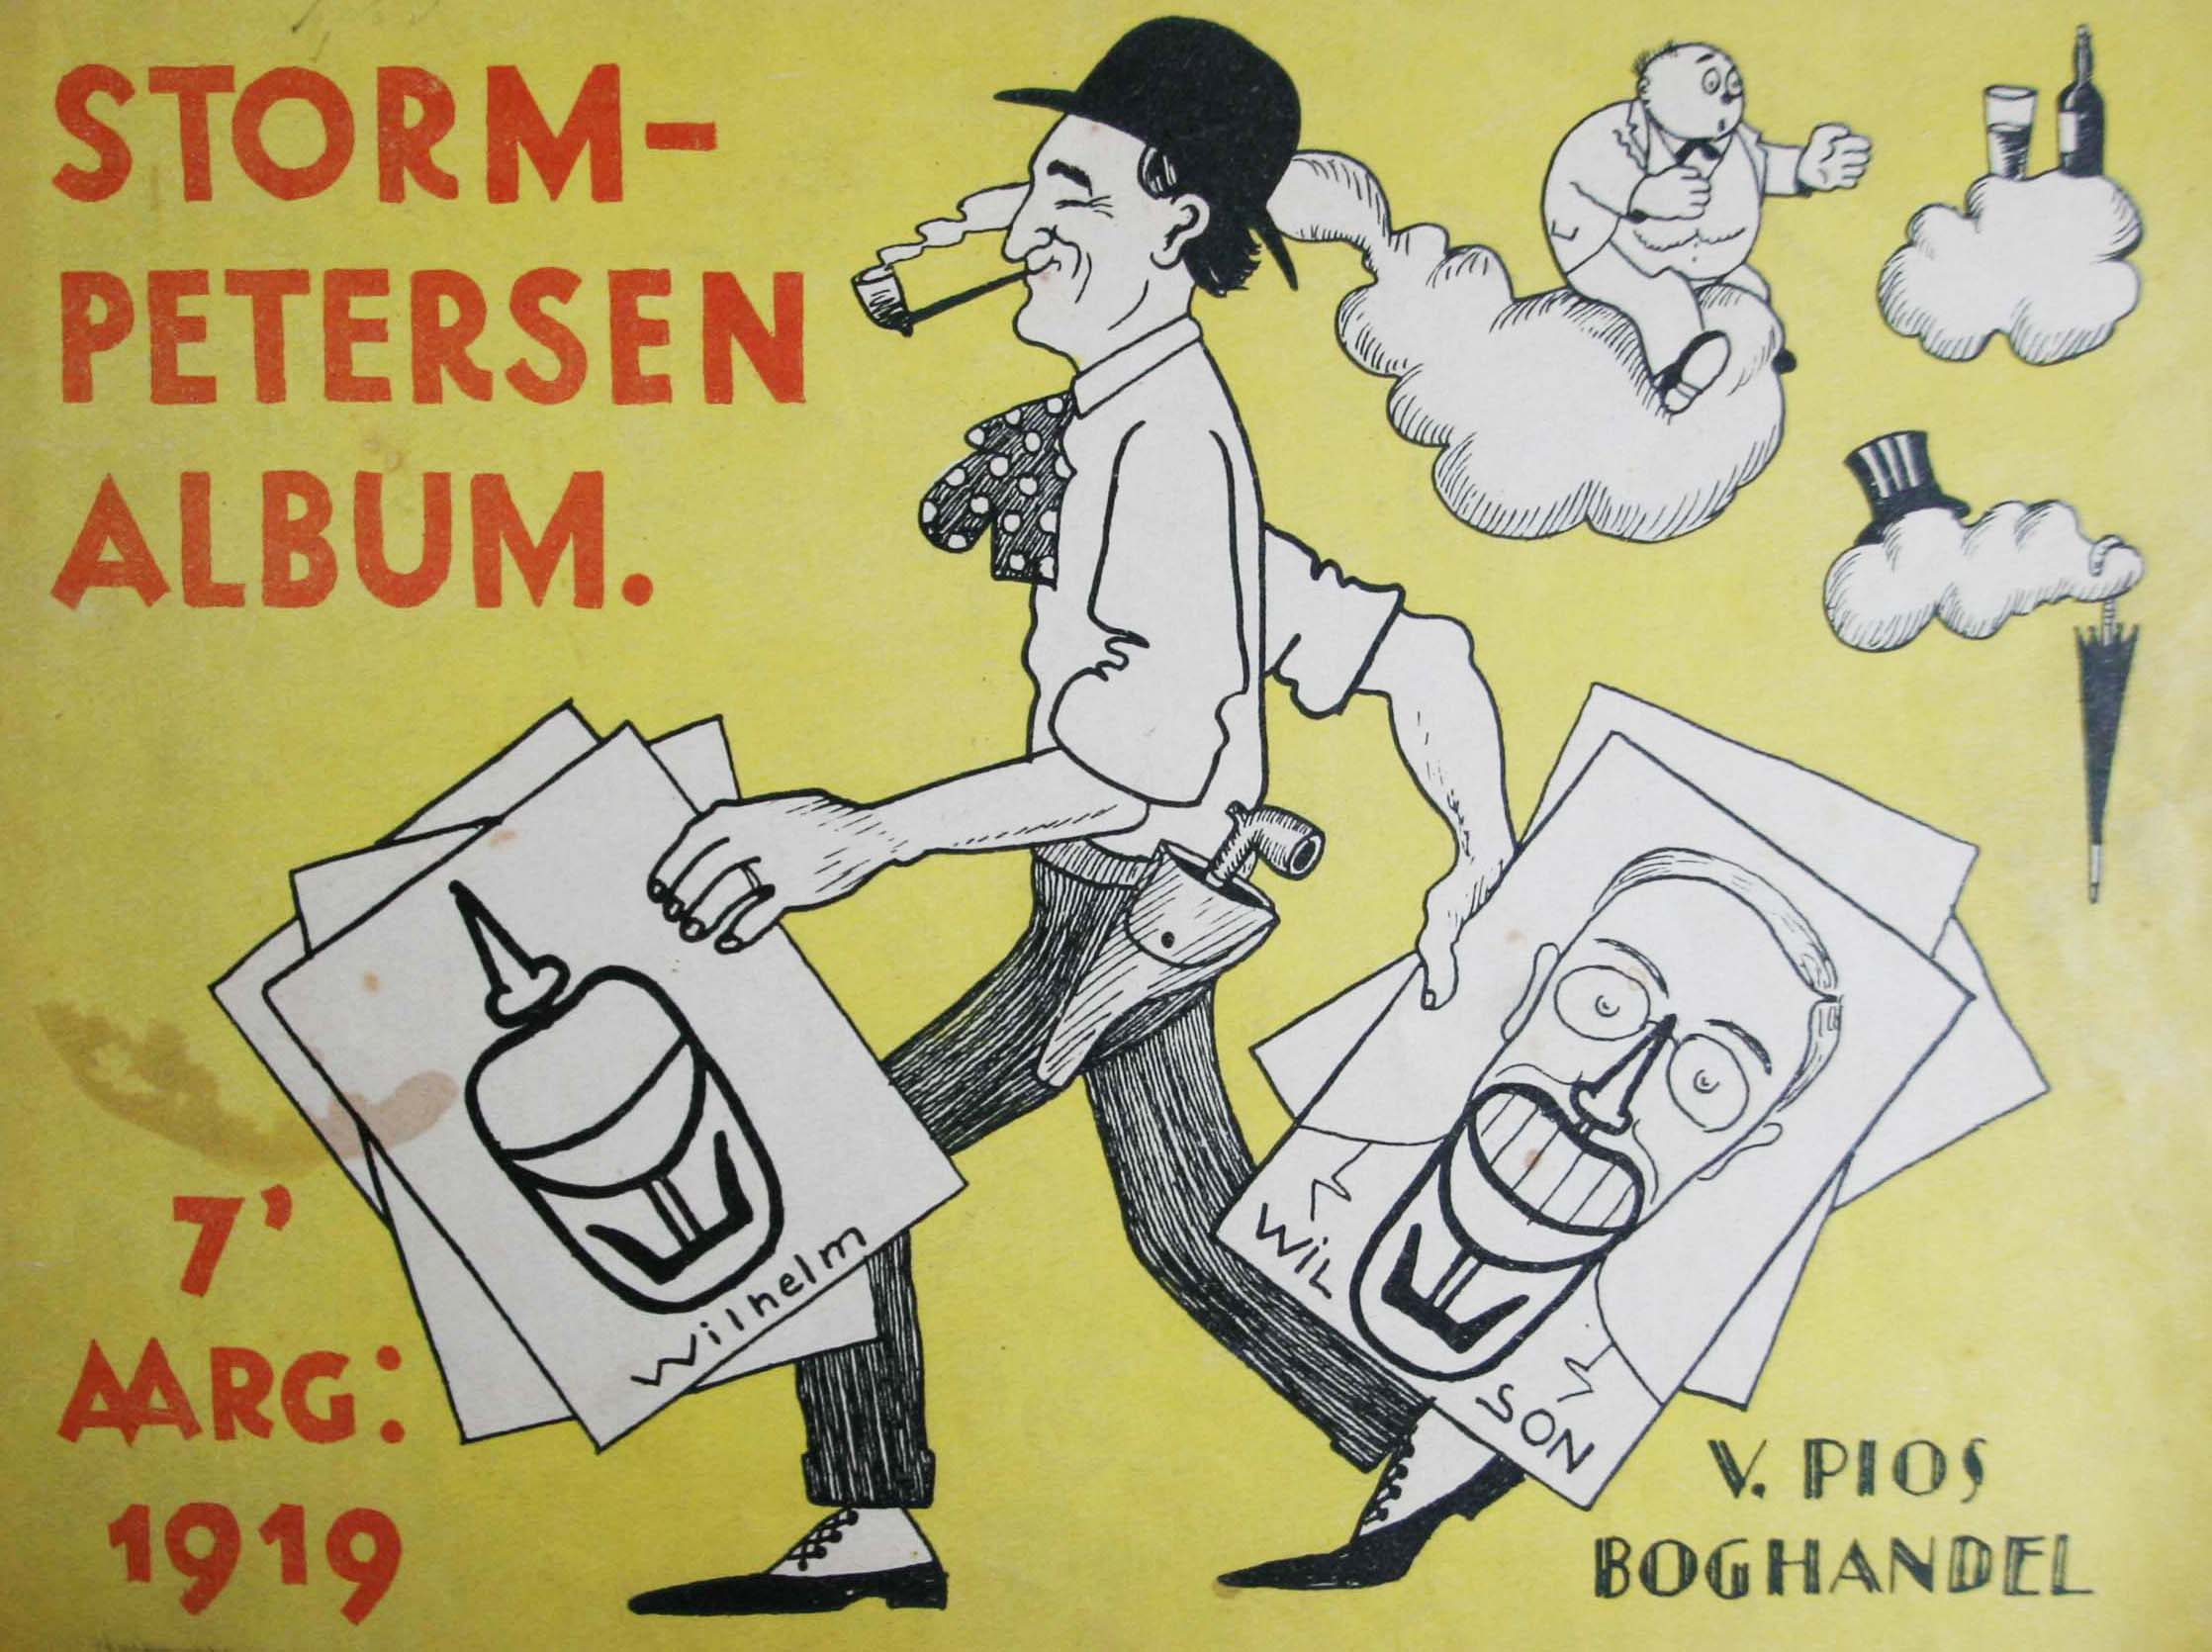 Robert Storm Petersen Storm P. Album 1919